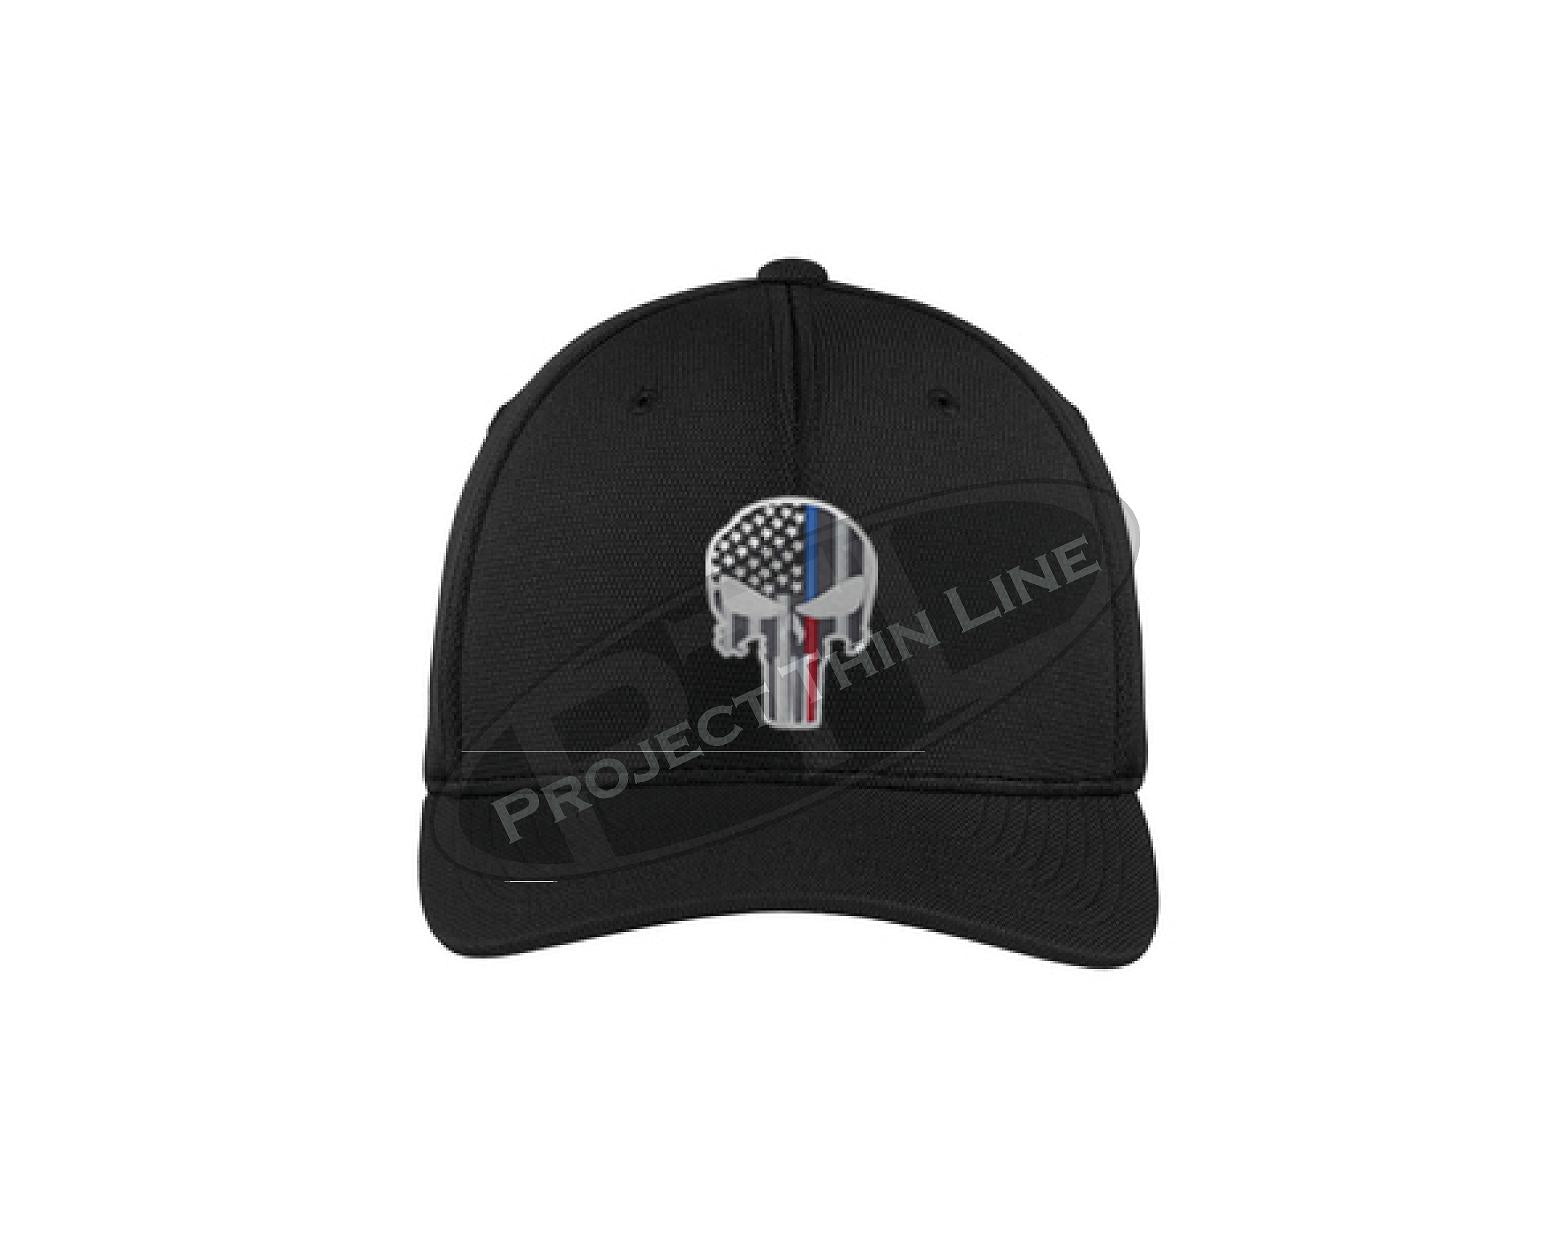 THIN BLUE LINE PUNISHER AMERICAN FLAG FLEXFIT HAT cap fitted